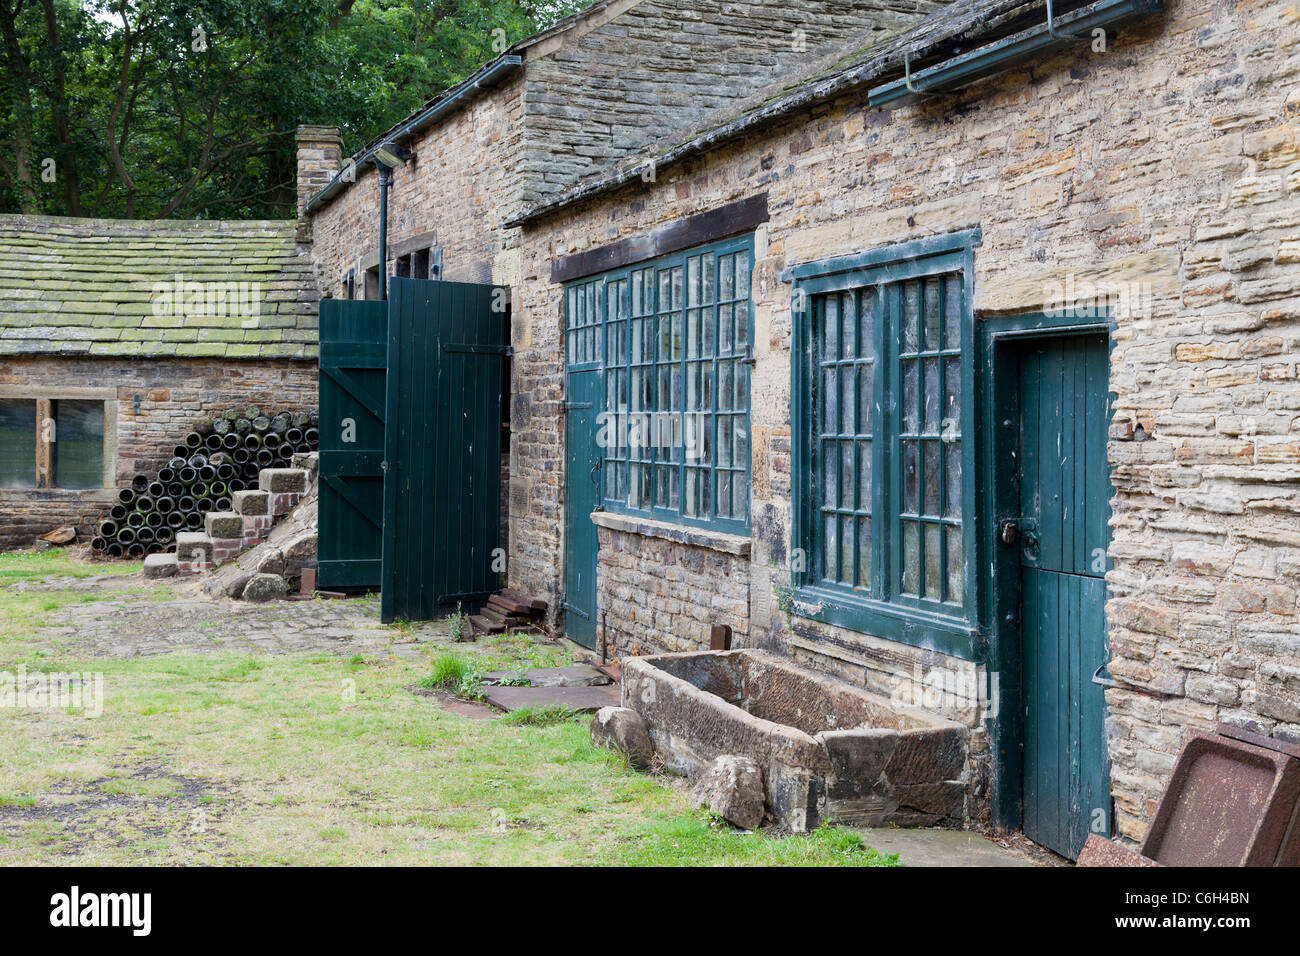 Abbeydale Industrial Hamlet, Sheffield, developed during the industrial revolution for making knives and tools - Stock Image